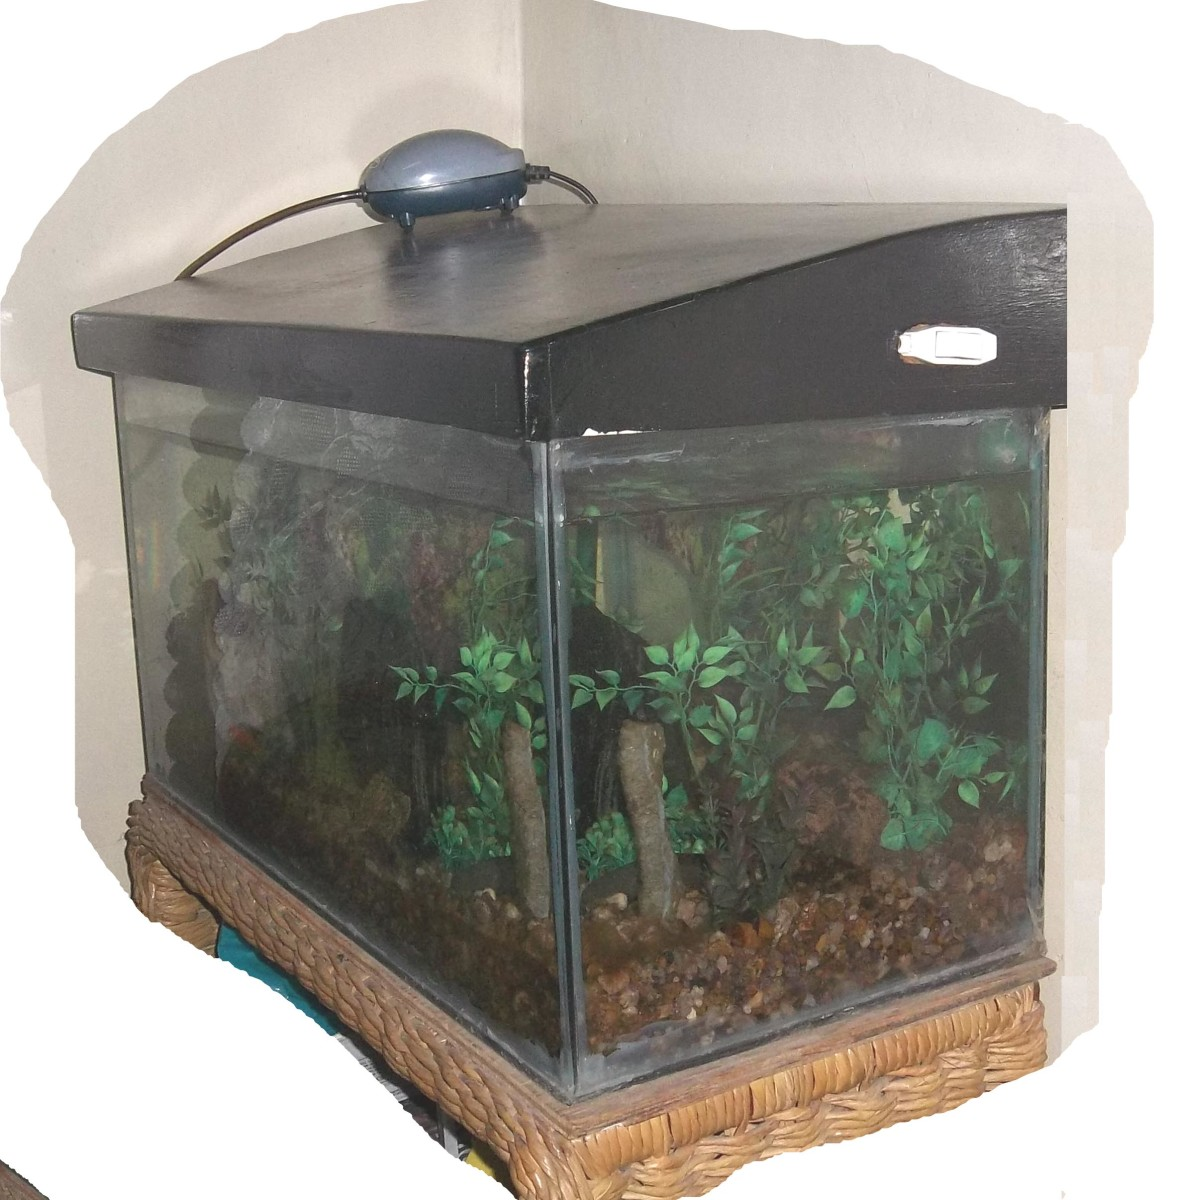 How to make a Glass Fish Tank: DIY basics | HubPages